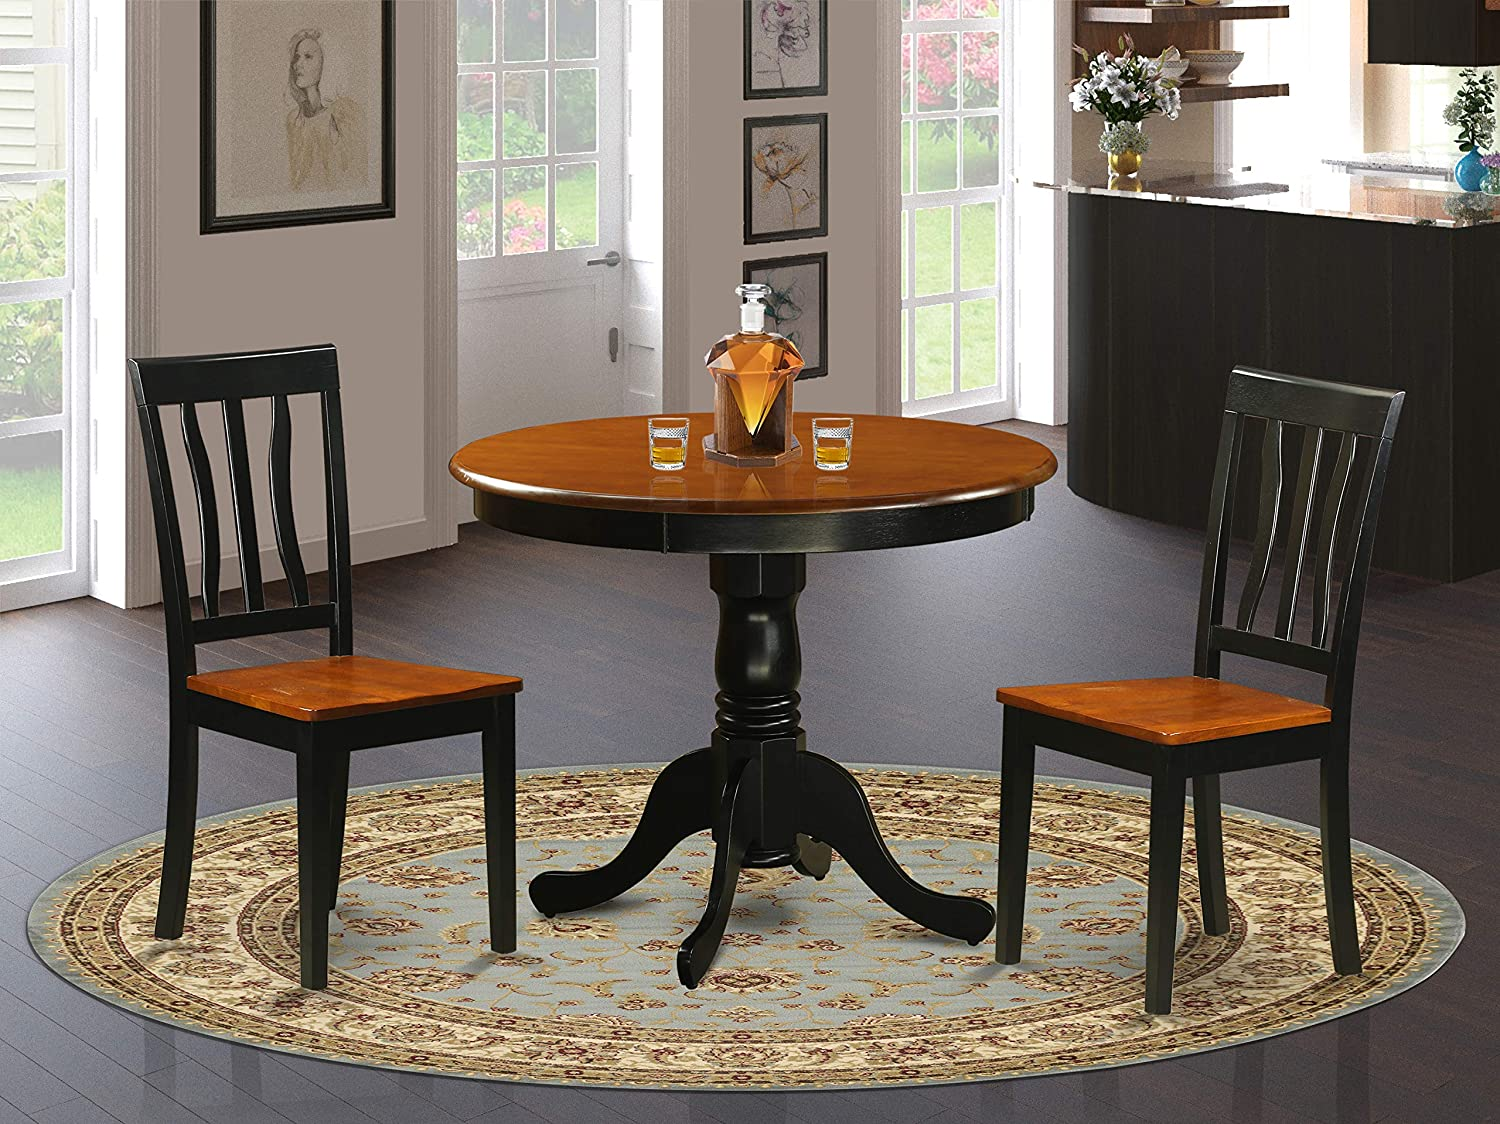 Amazon Com East West Furniture Dining Room Table Set 2 Fantastic Kitchen Chairs A Wonderful Round Dining Table Cherry Color Wooden Seat Cherry And Black Wood Table Table Chair Sets